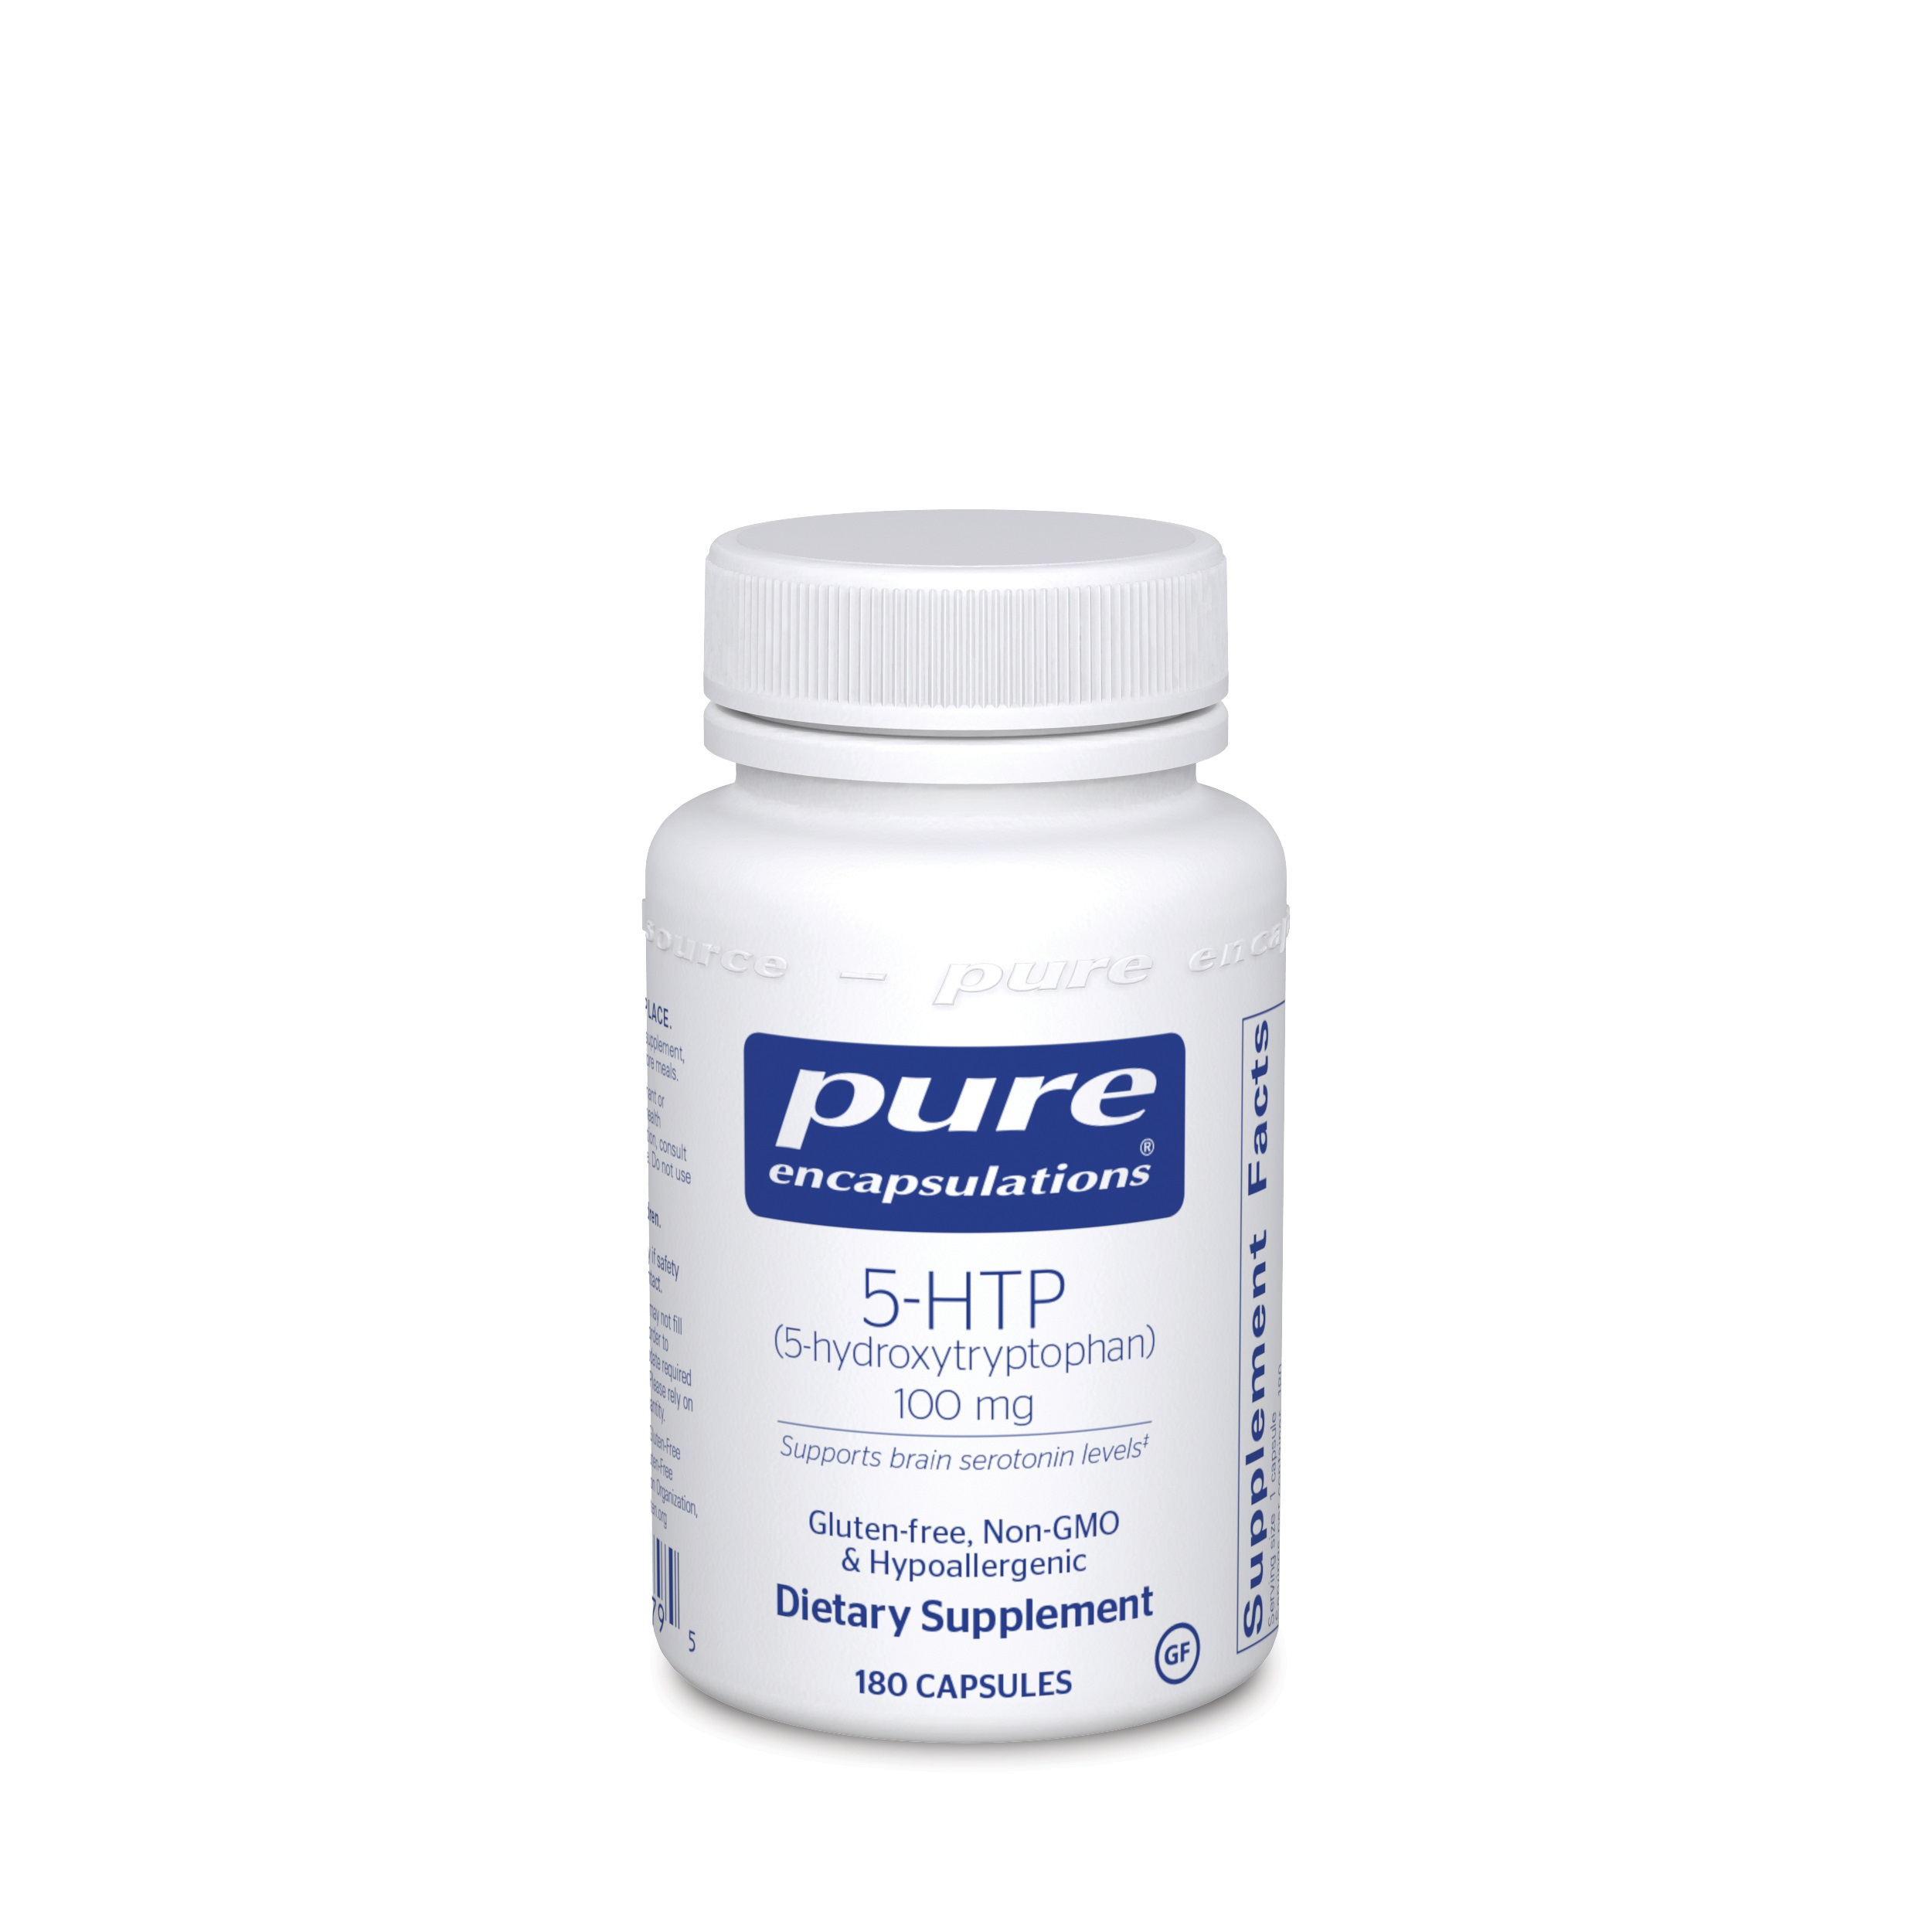 Pure Encapsulations 5-HTP (5-Hydroxytryptophan) 100 mg